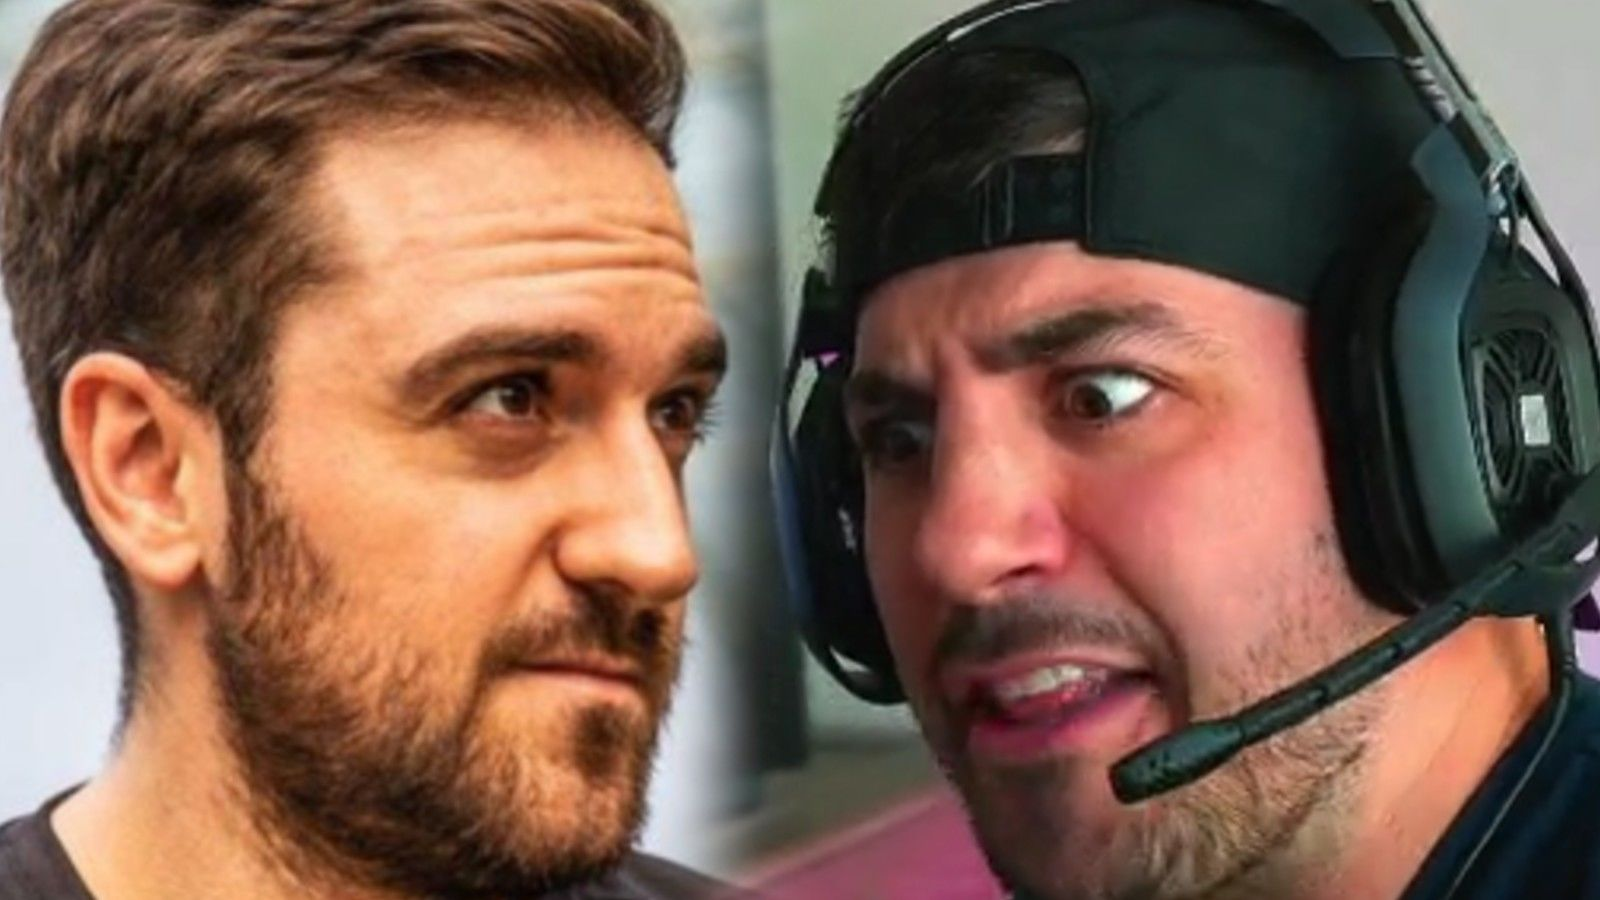 Nickmercs vs Ocelote